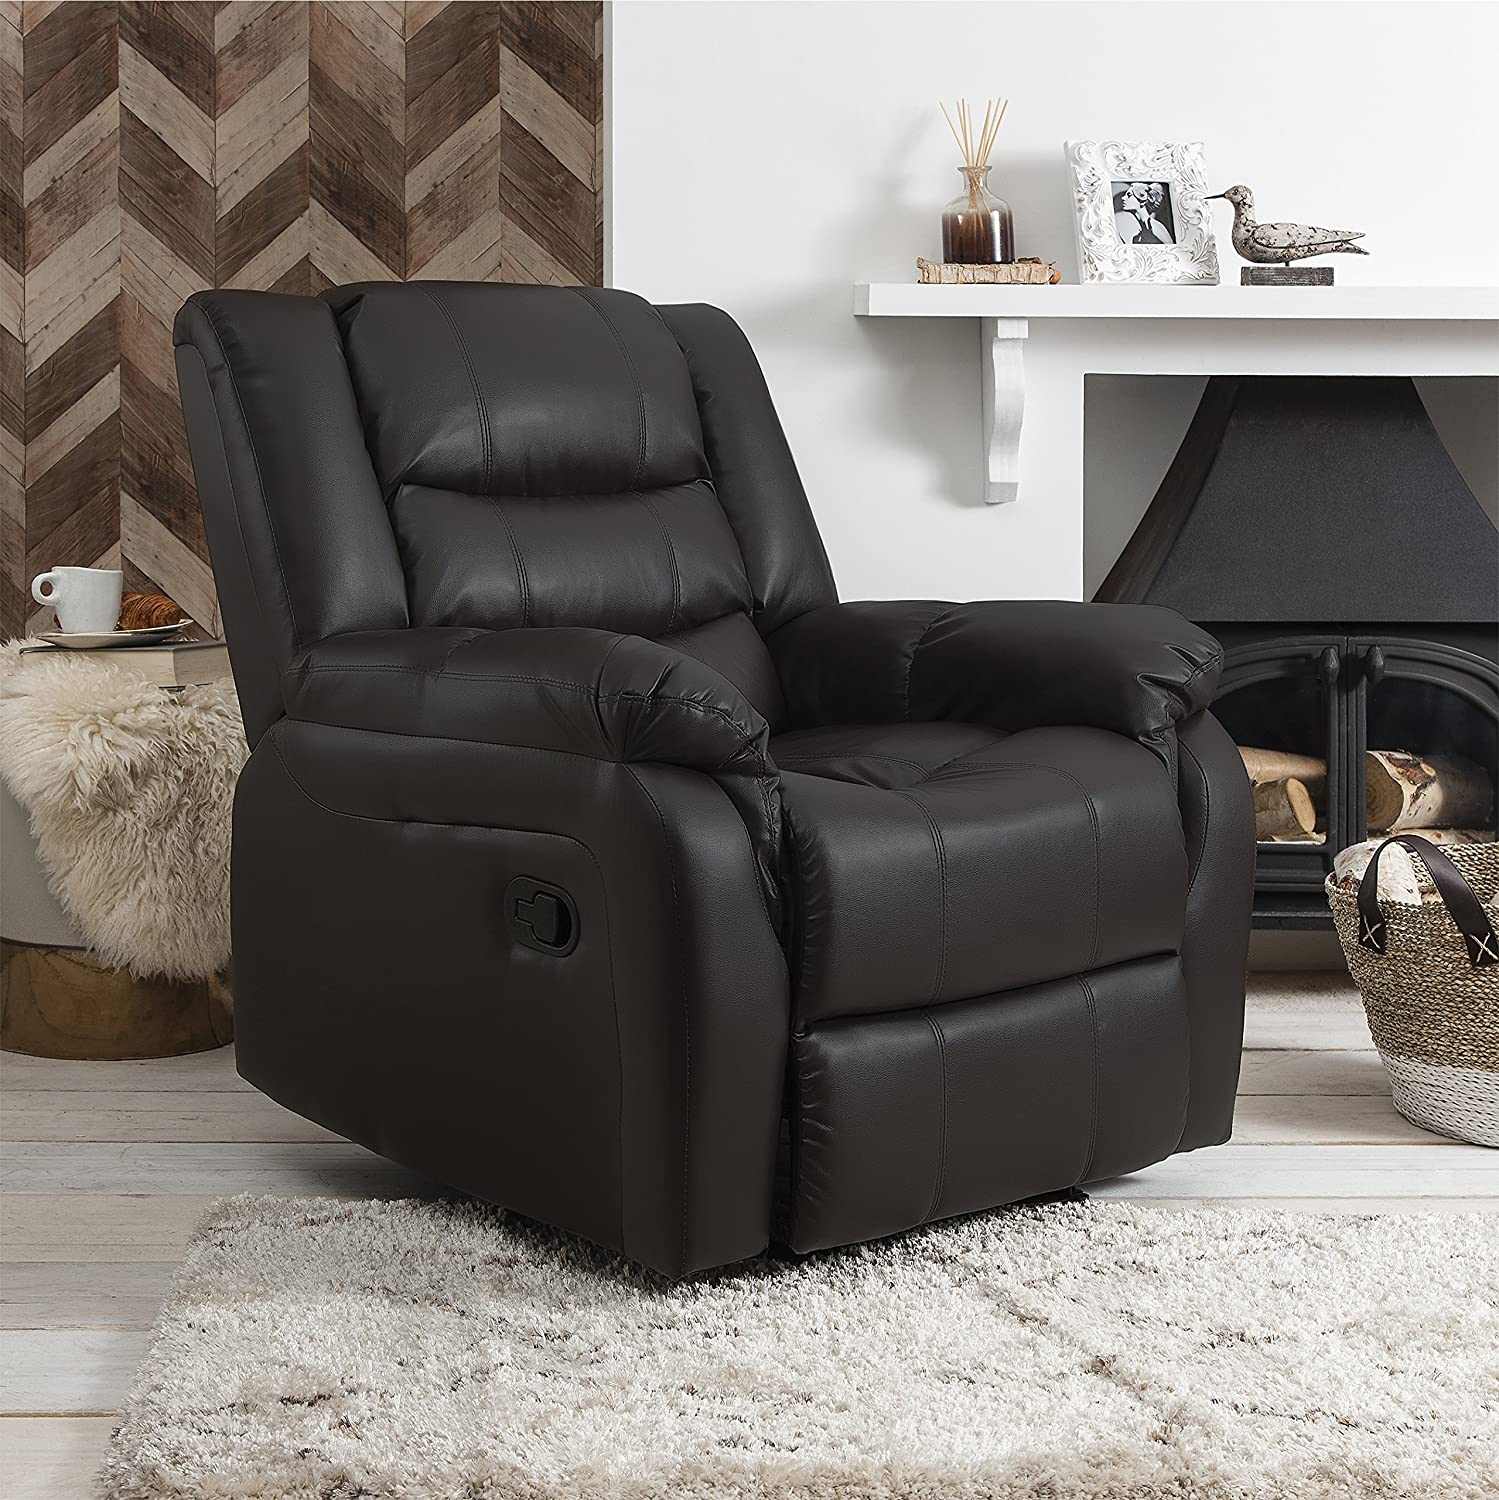 Laura James Bonded Leather Recliner Armchair | Home Lounge Reclining Chair | Cinema & Gaming | Black AGTC Ltd.